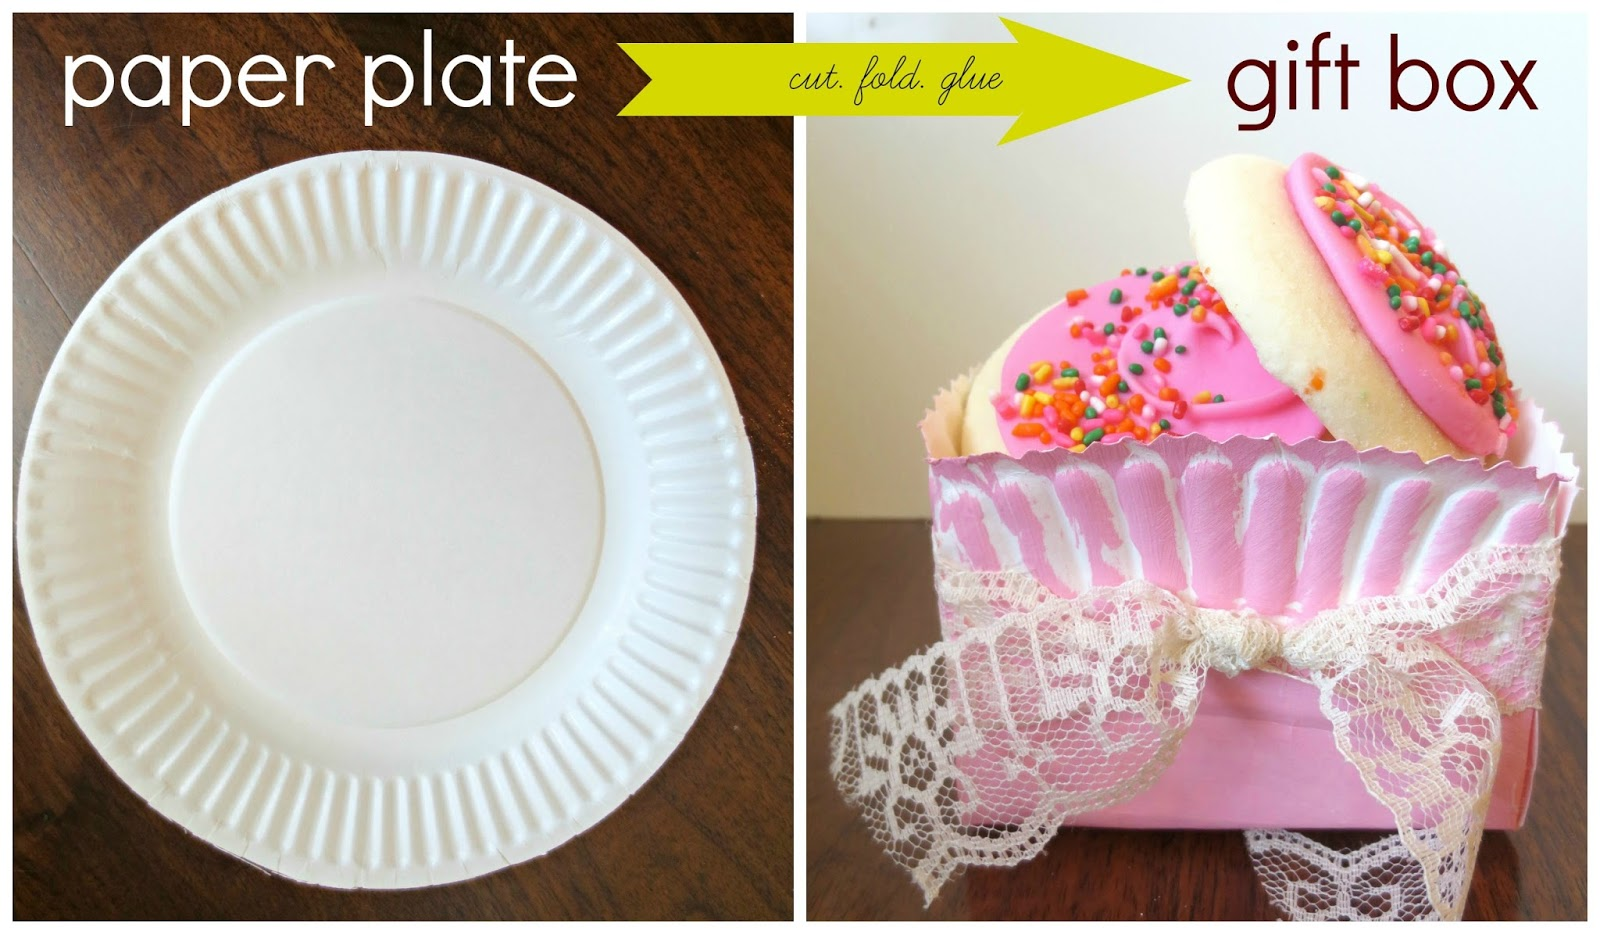 DIY Gift Box Using a Paper Plate!  sc 1 st  Sweet Charli & DIY Gift Box Using a Paper Plate! - Sweet Charli